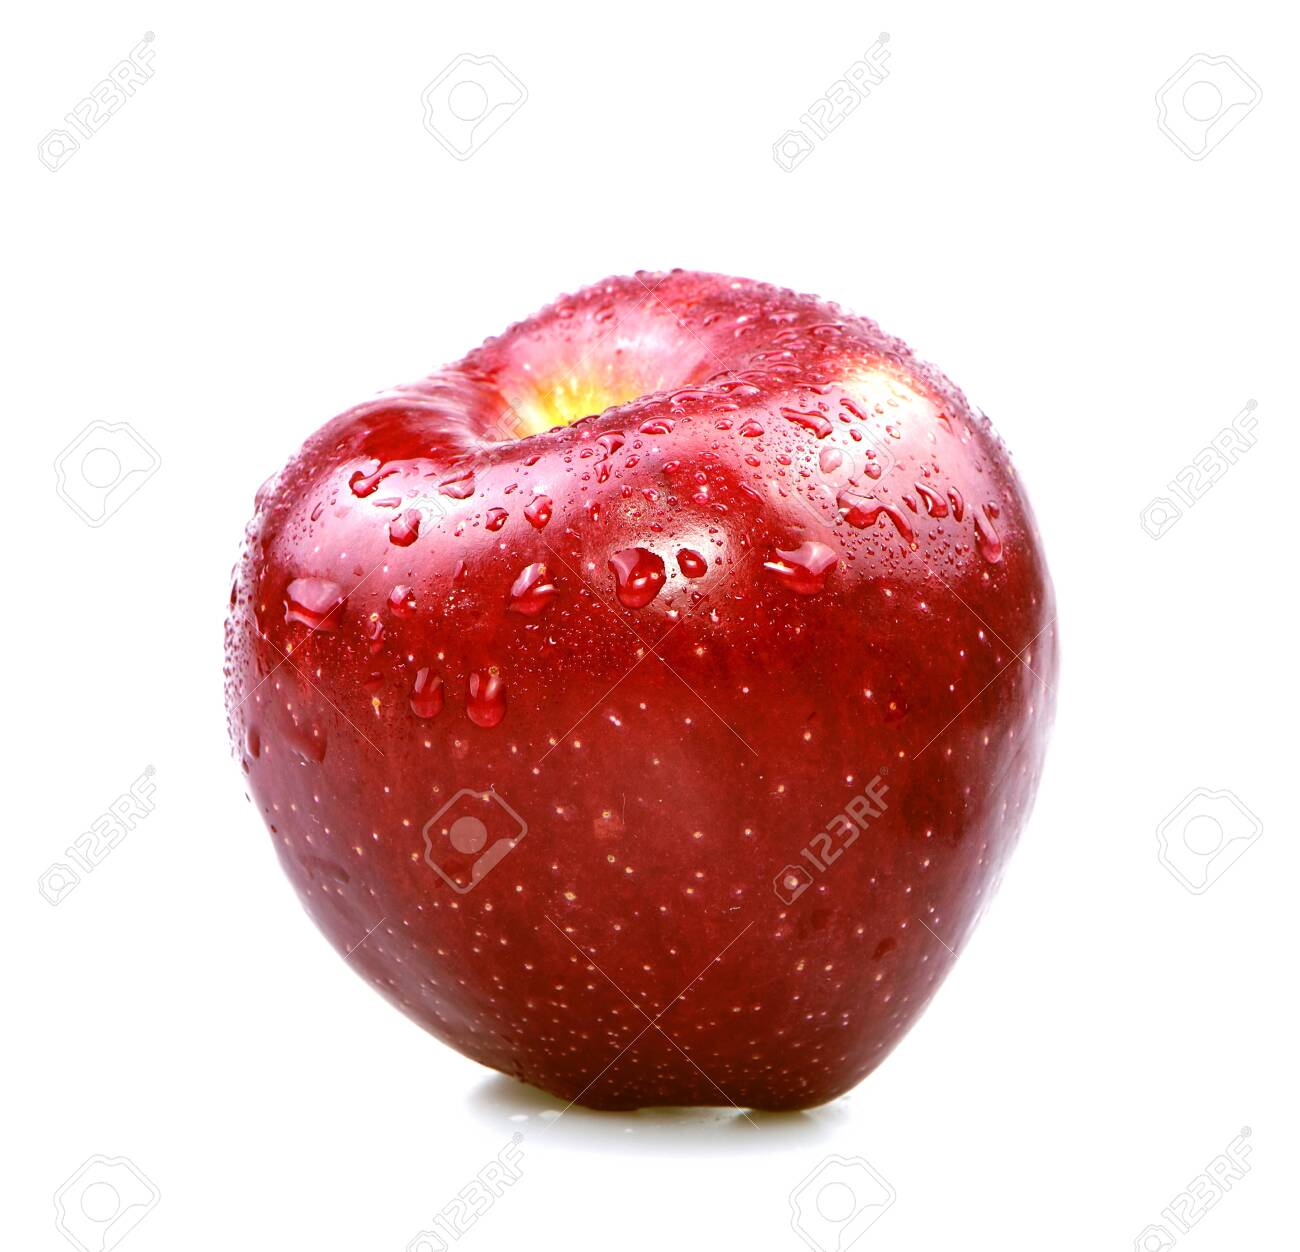 Red apple - 147424763